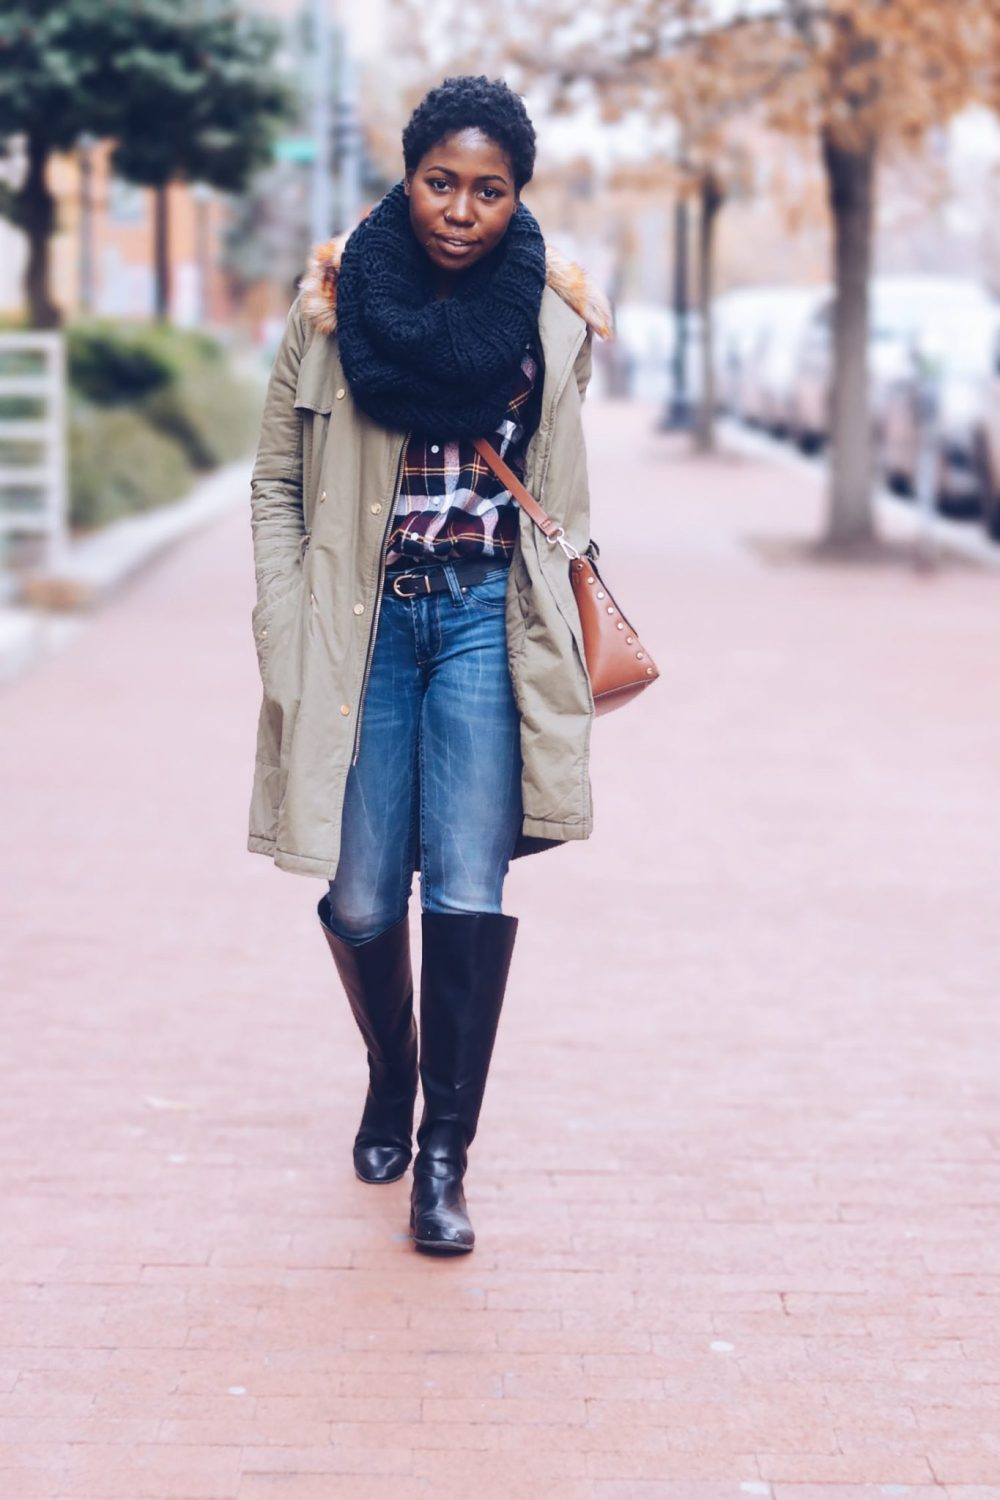 style-synopsis-winter-boots-parka-casual-look